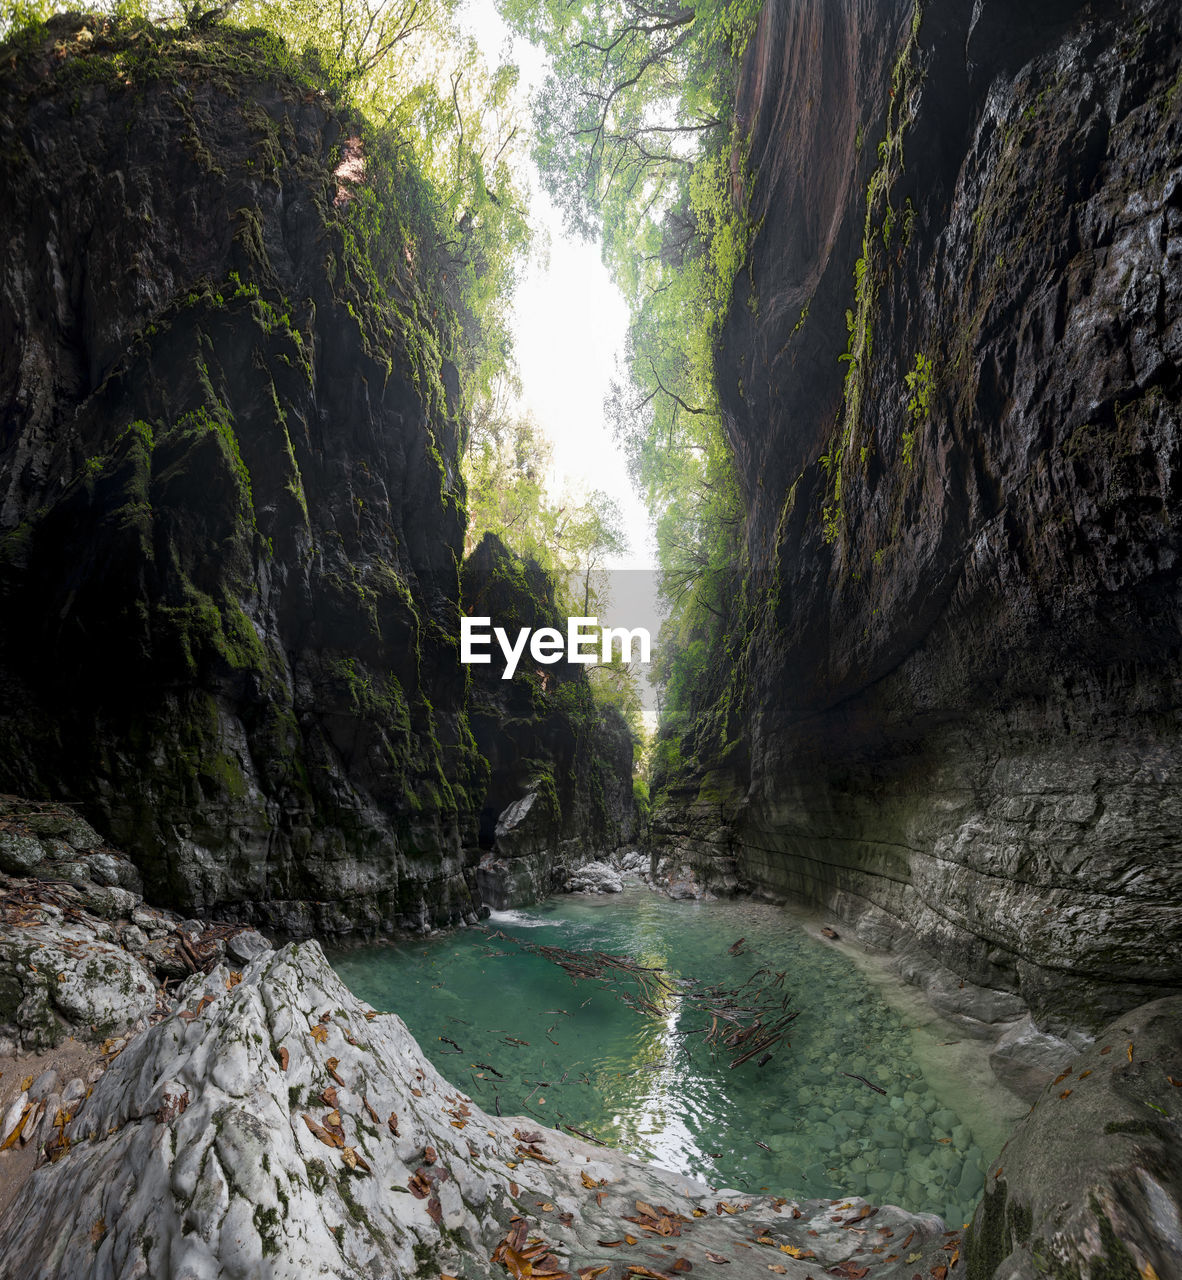 rock, beauty in nature, rock - object, scenics - nature, water, solid, tranquility, plant, mountain, nature, rock formation, tree, day, land, no people, non-urban scene, tranquil scene, outdoors, river, flowing, flowing water, formation